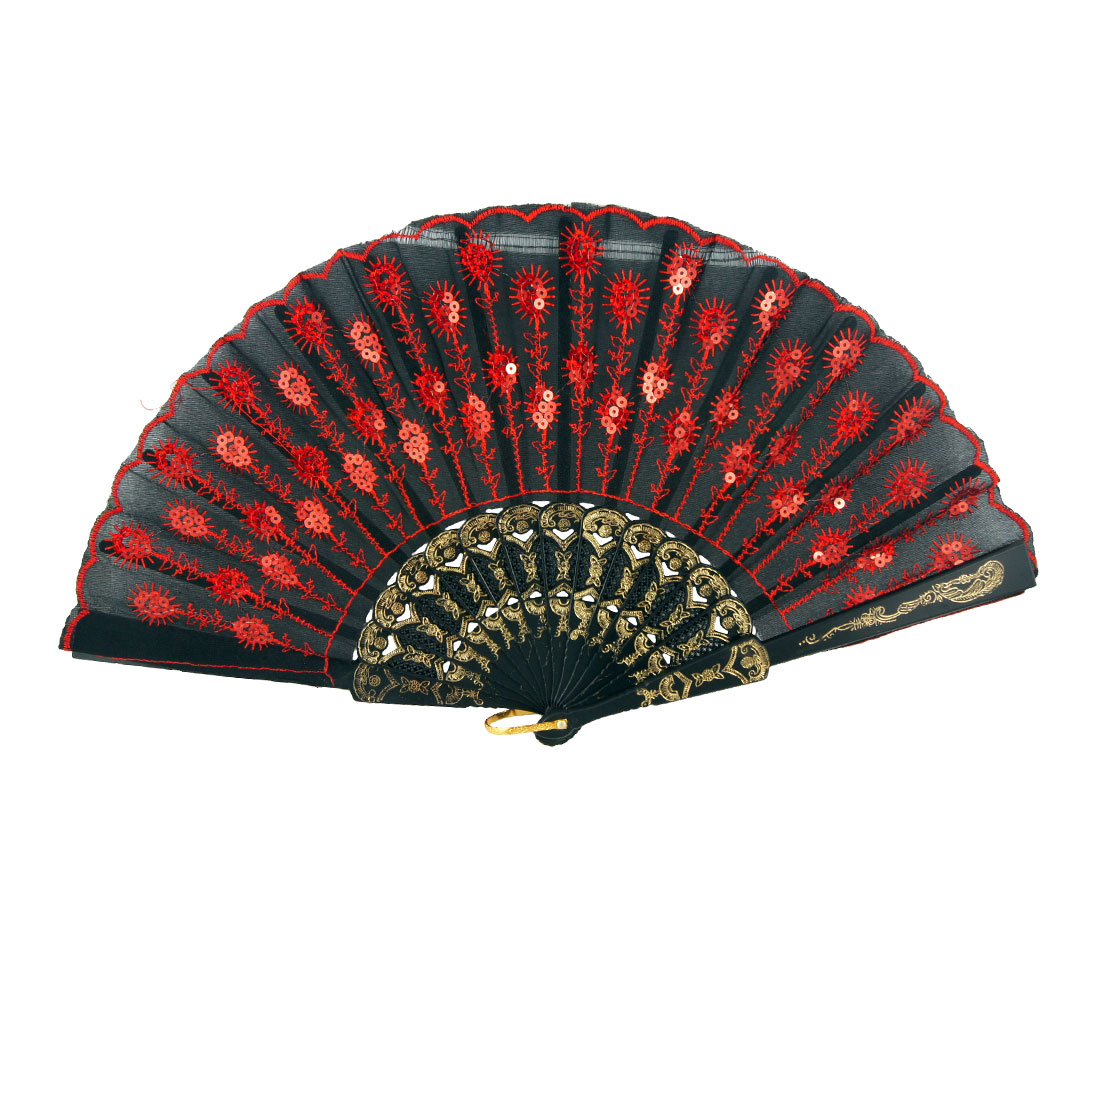 Red Embroidered Peacock Glitter Sequins Detailing Black Cloth Foldable Hand Fan